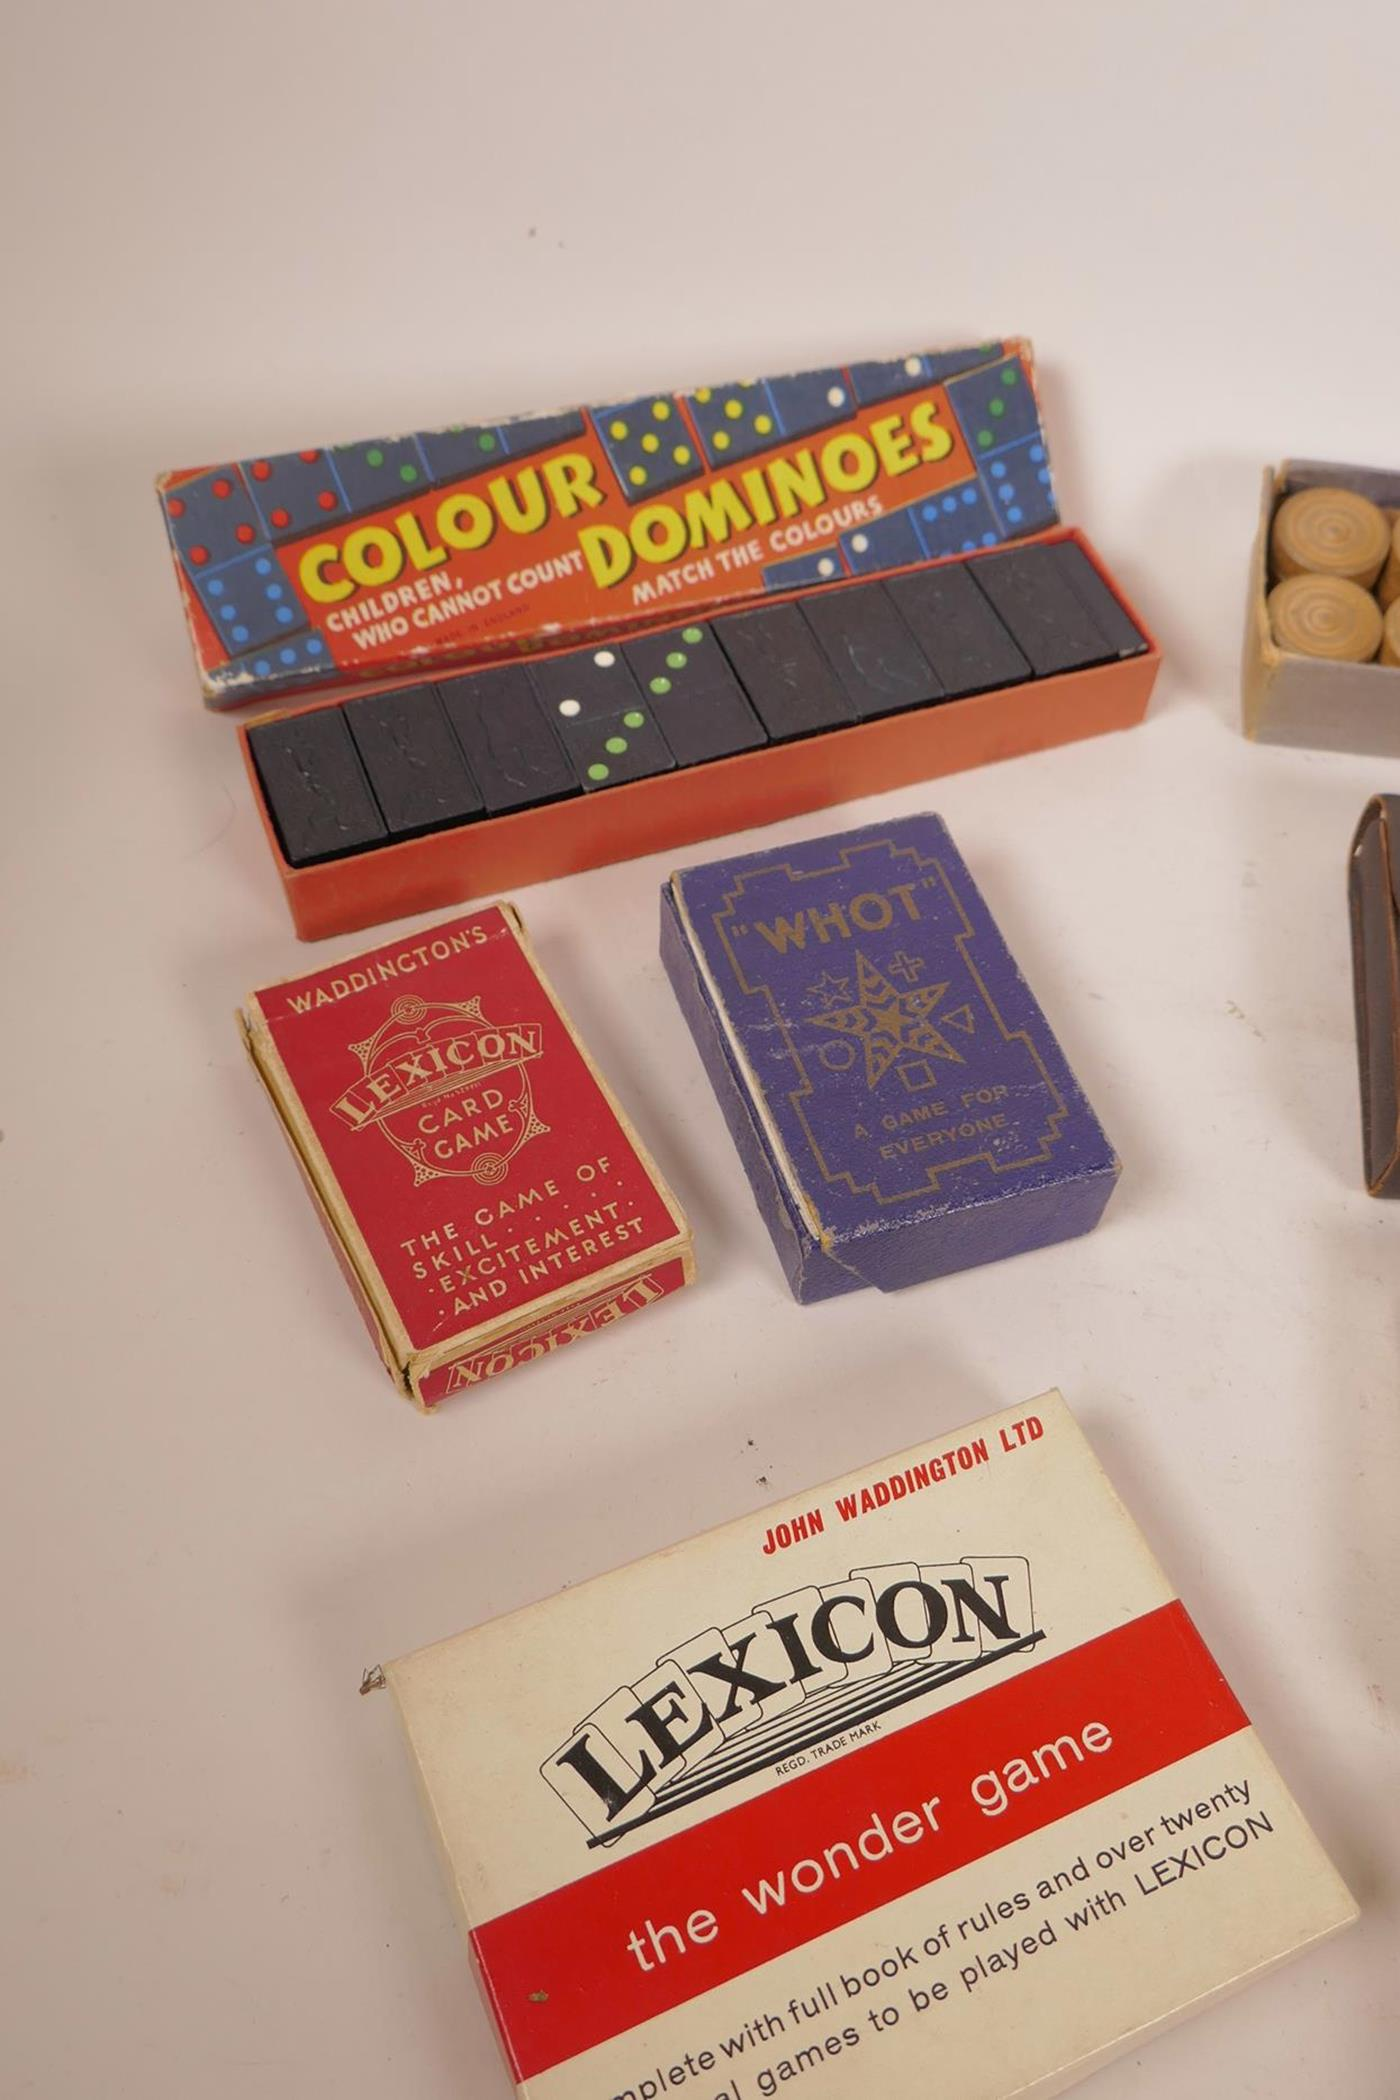 Lot 6 - A box of vintage games and playing cards including carpet croquet, dominoes etc